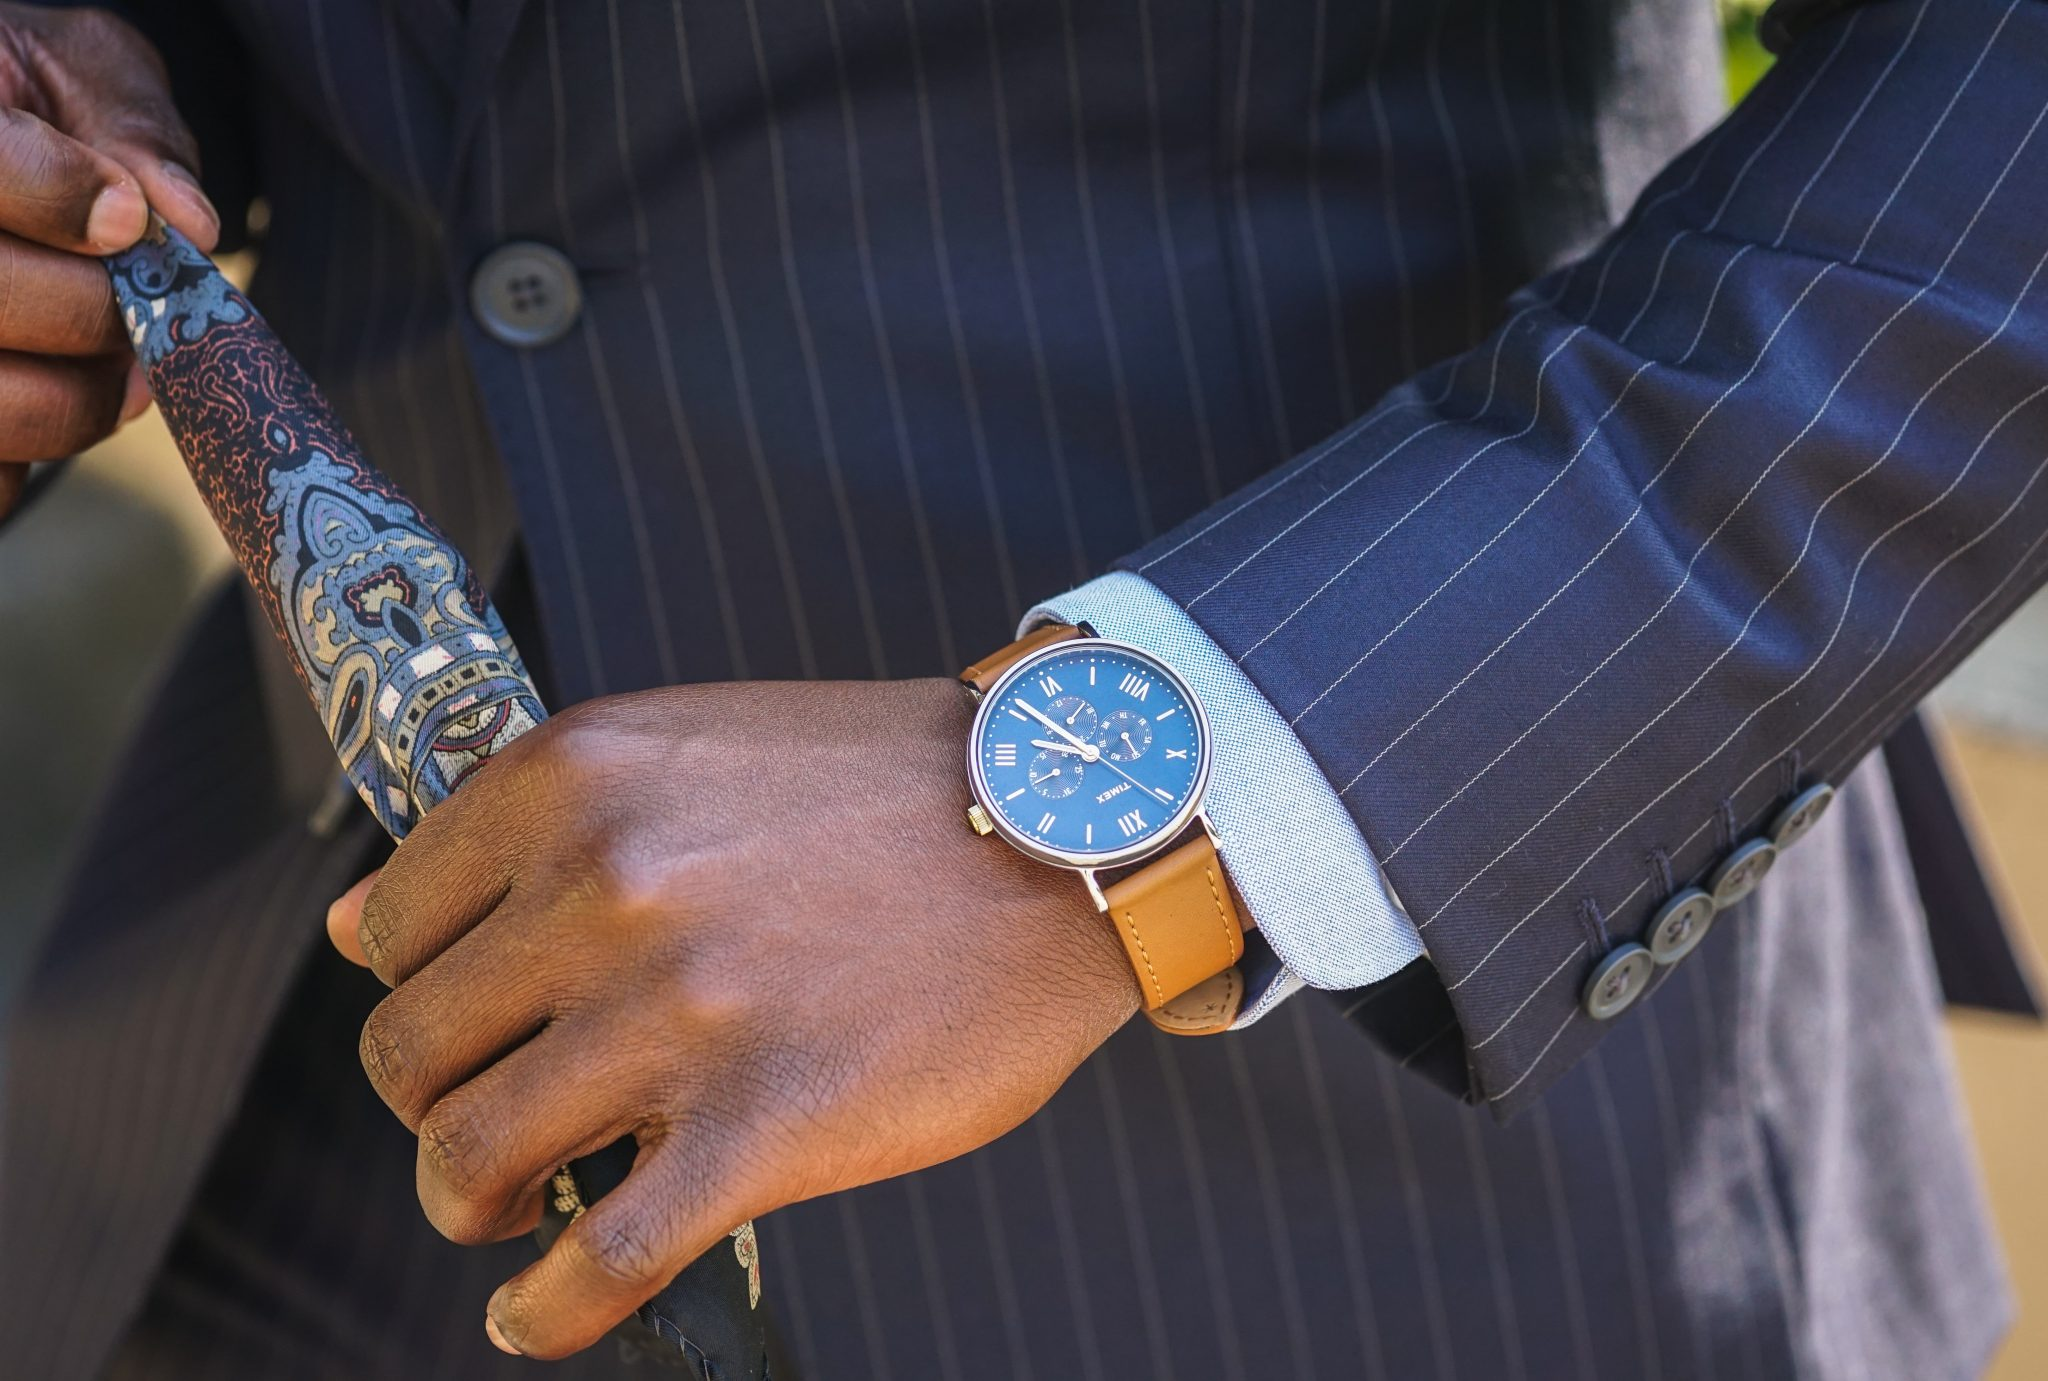 dapper-advisor-dress like a boss-black-man-wearing-navy-pinstripe-suit-business-attire-timex-multifunction-watch